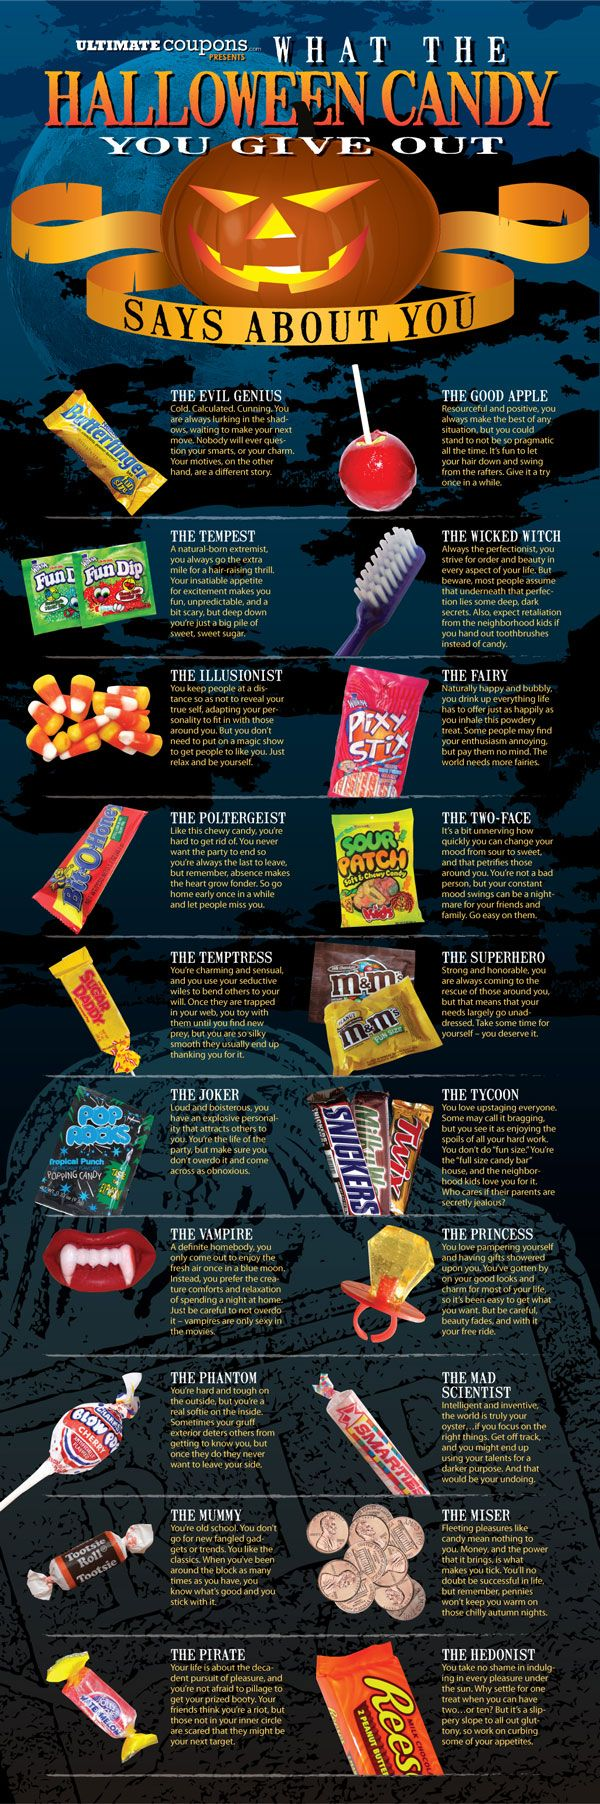 #Halloween What The Halloween Candy You give out Says about you... #funfacts #bootcampworkout